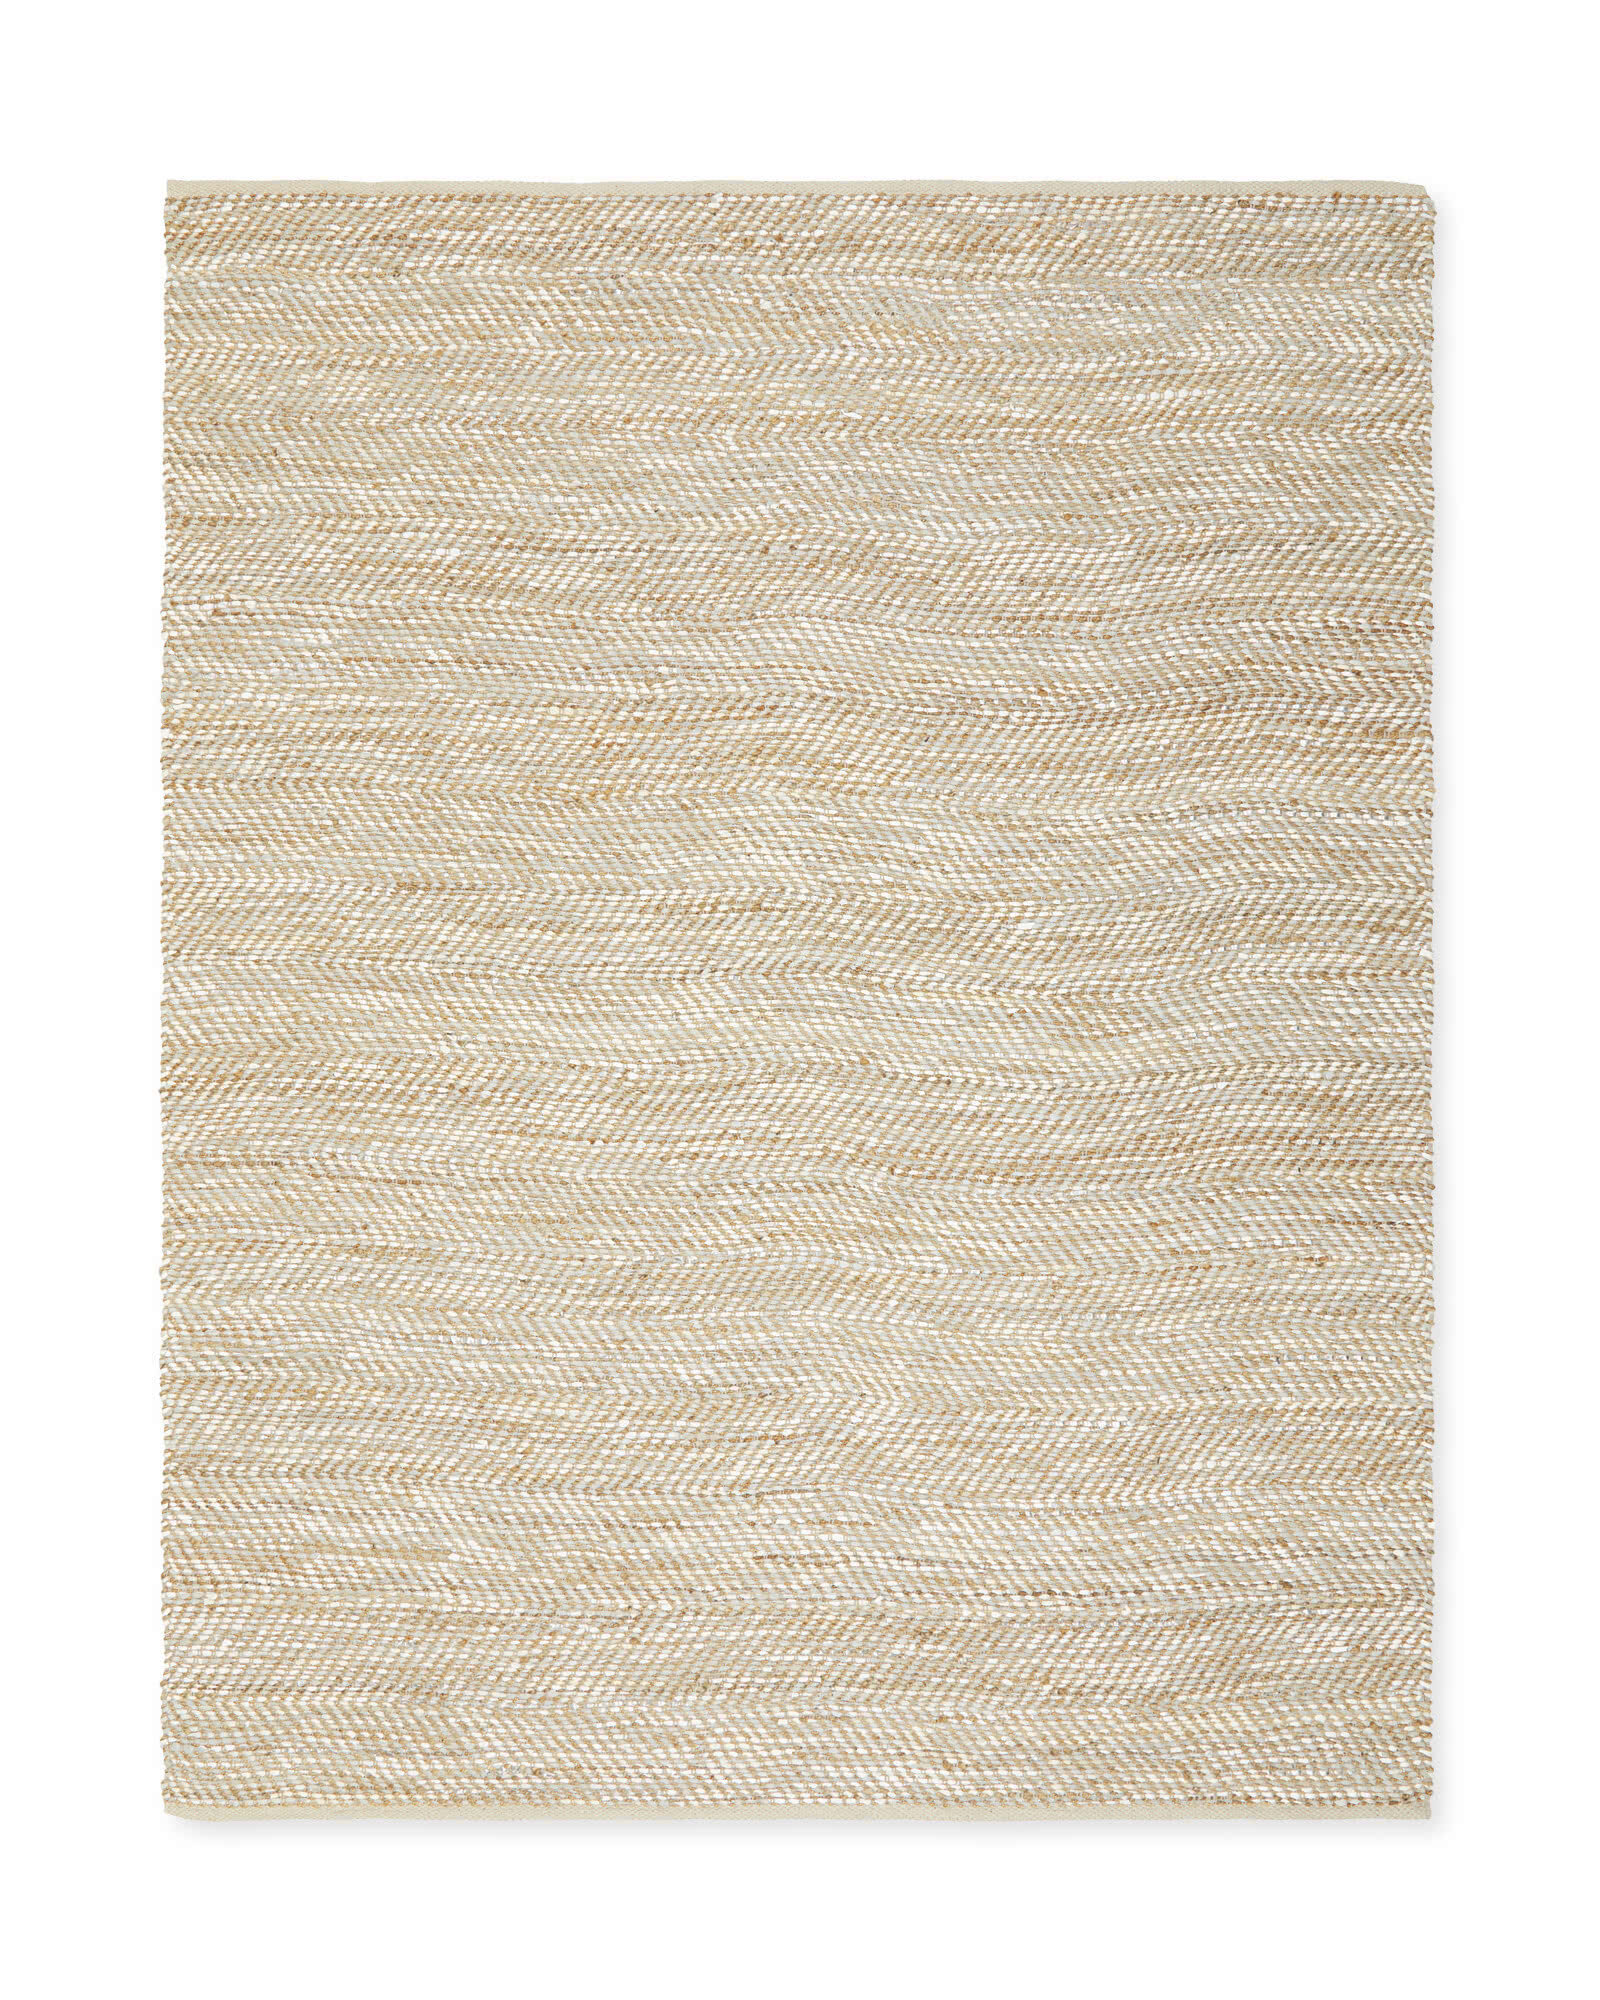 Rug_Metallic_Suede_Hemp_8x10_MV_0041_Crop_SH.jpg